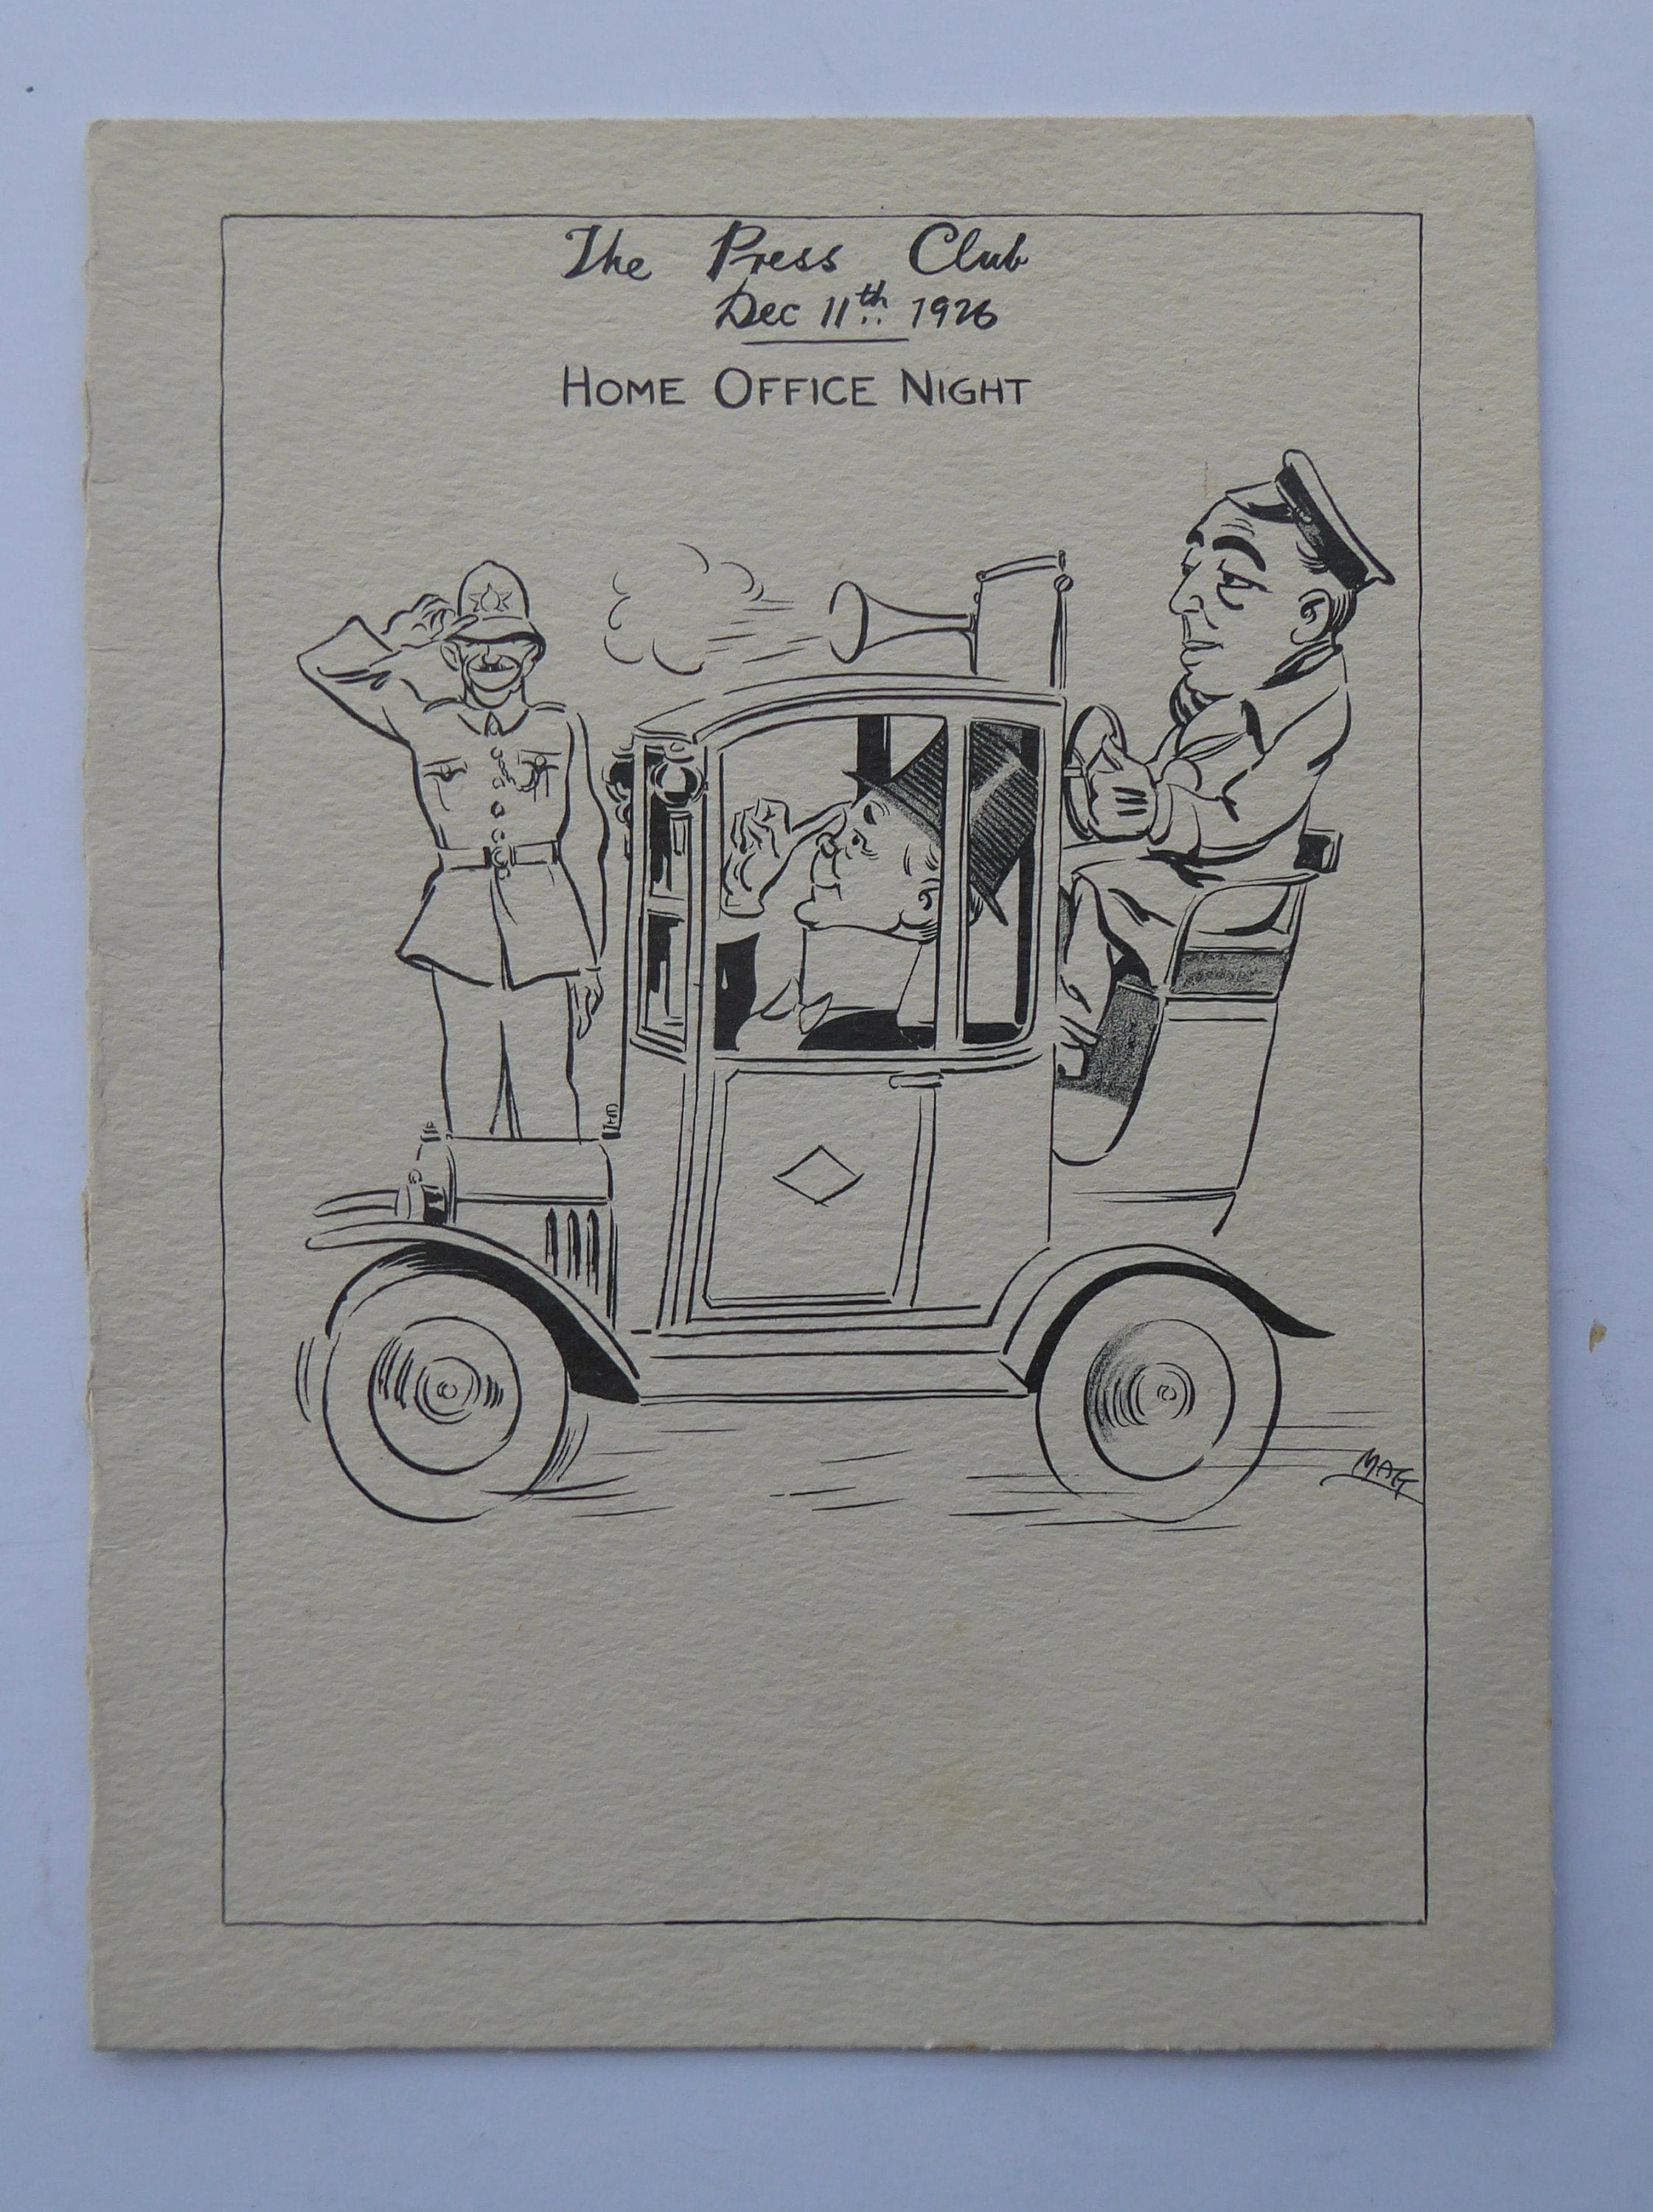 Home Office Club British Society Document 1926 The Press Club Home Office Night Card